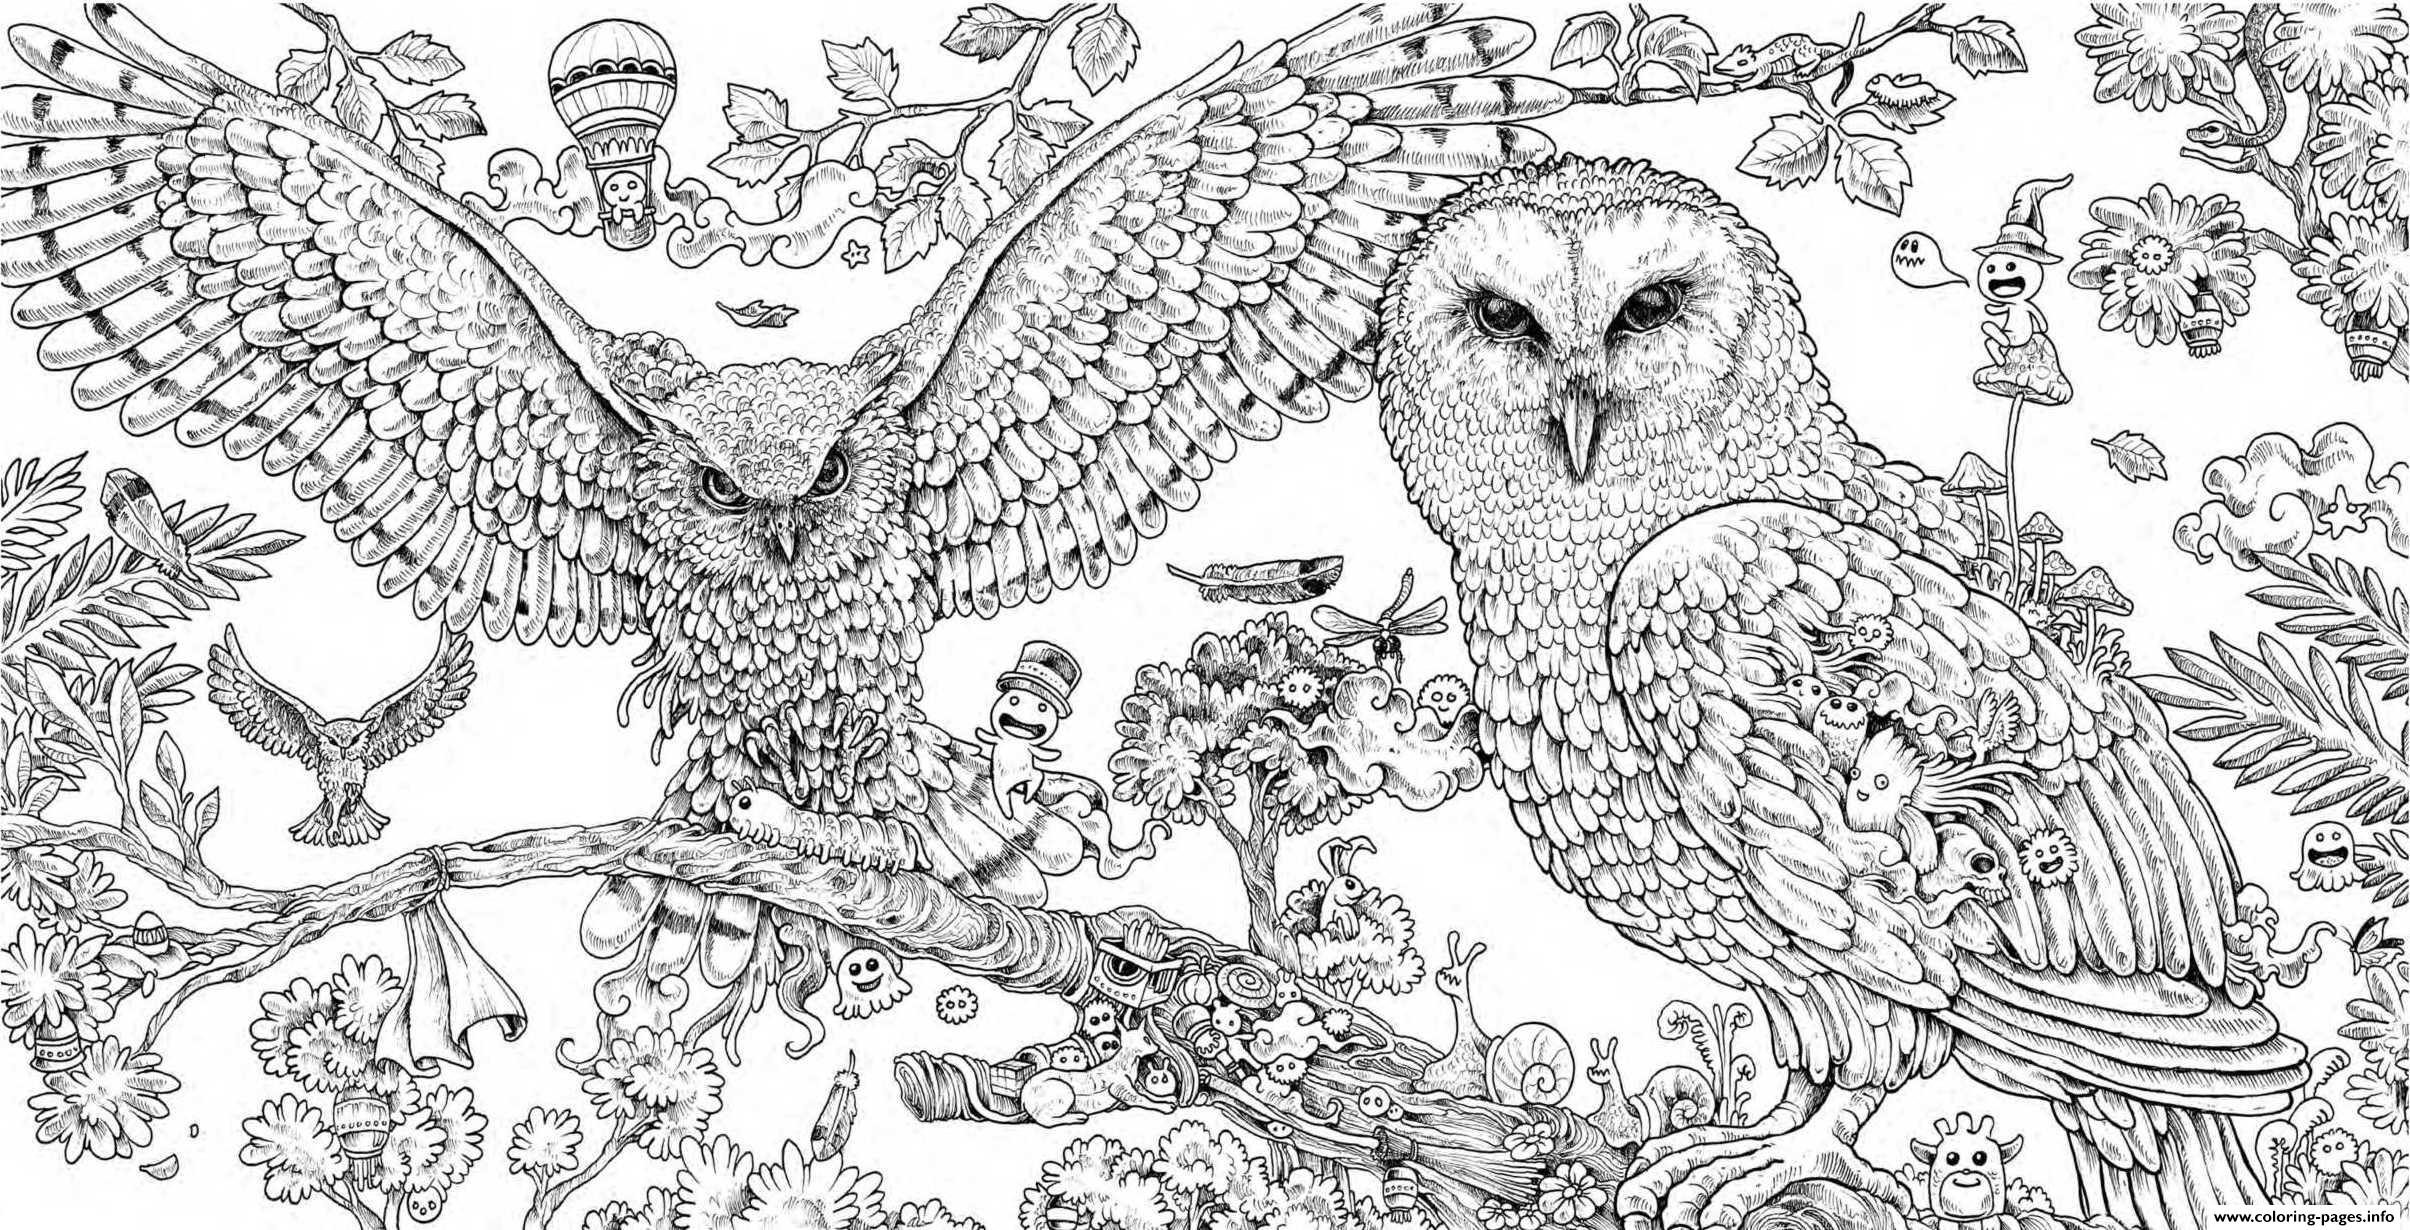 hard animal coloring pages Animorphia Owls Hard Adult Animal Coloring Pages Printable hard animal coloring pages